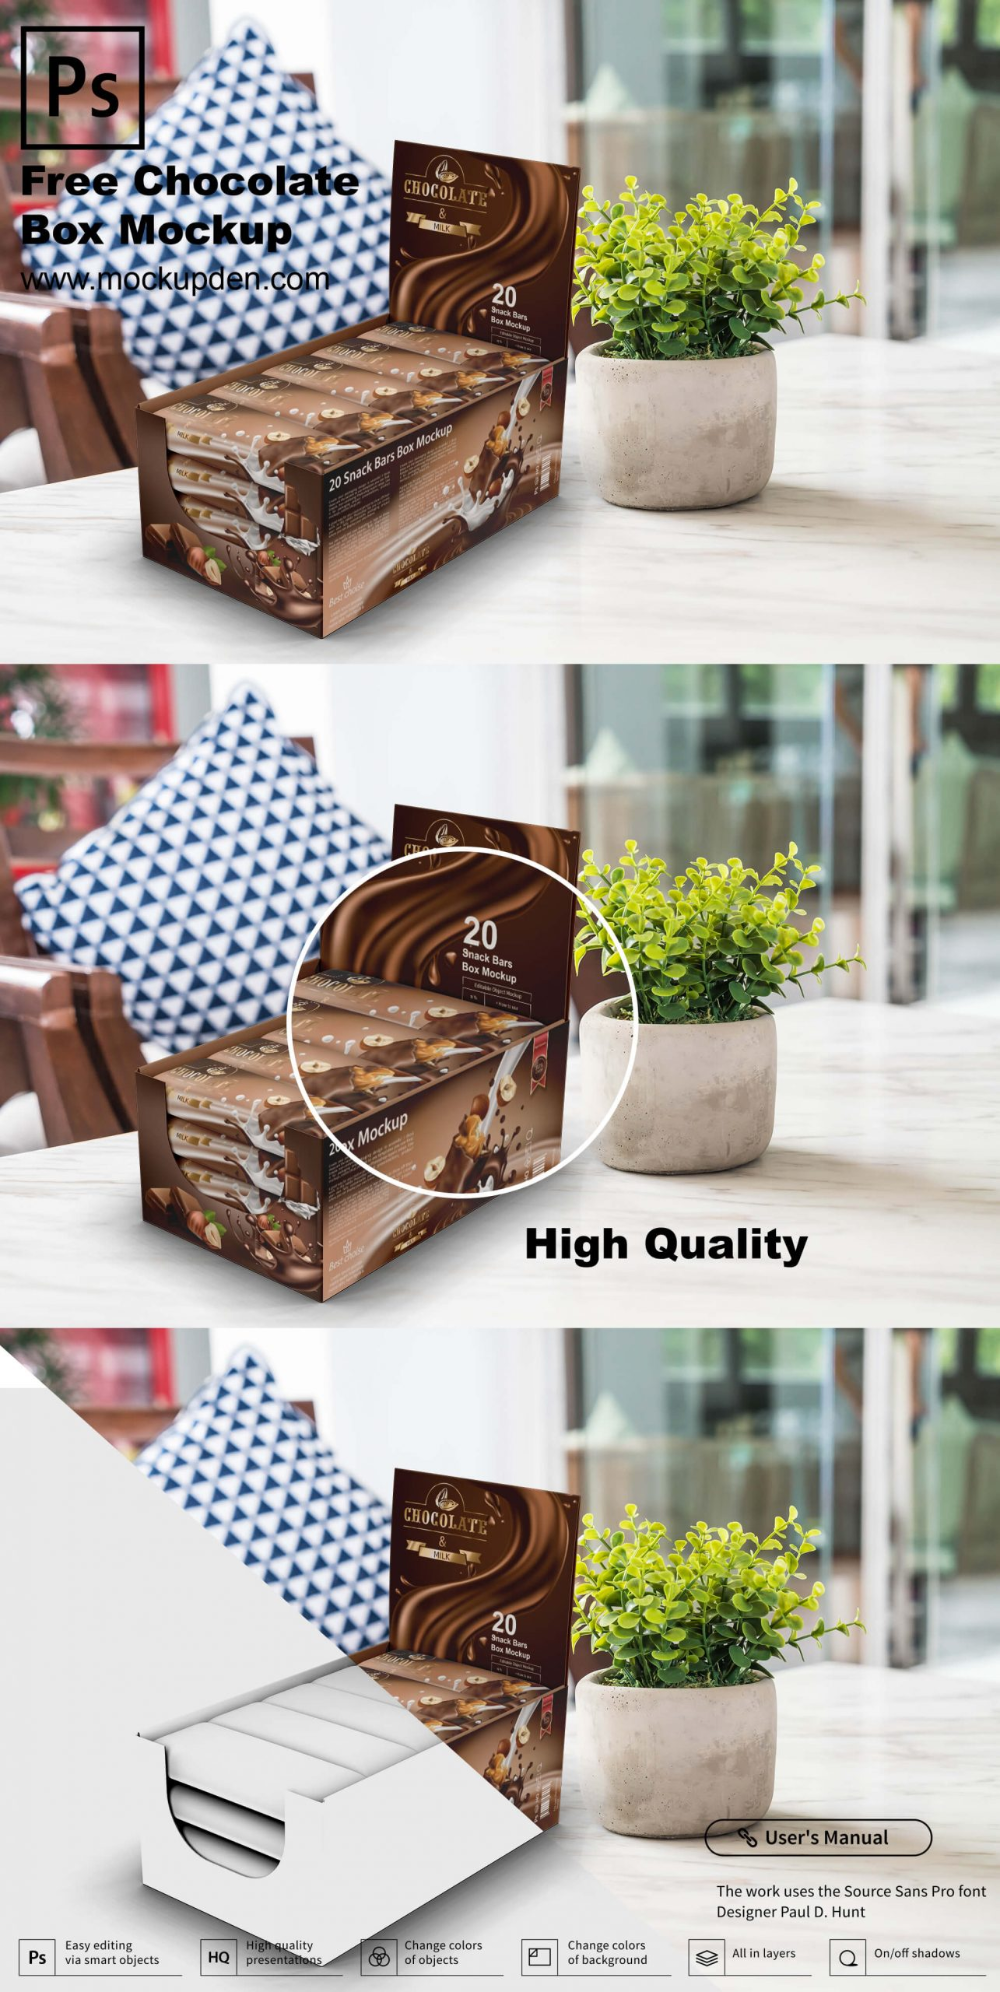 Download Best Chocolate Box Mockup 22 Free Premium Chocolate Packaging Psd Templates In 2020 Box Mockup Chocolate Packaging Packaging Template